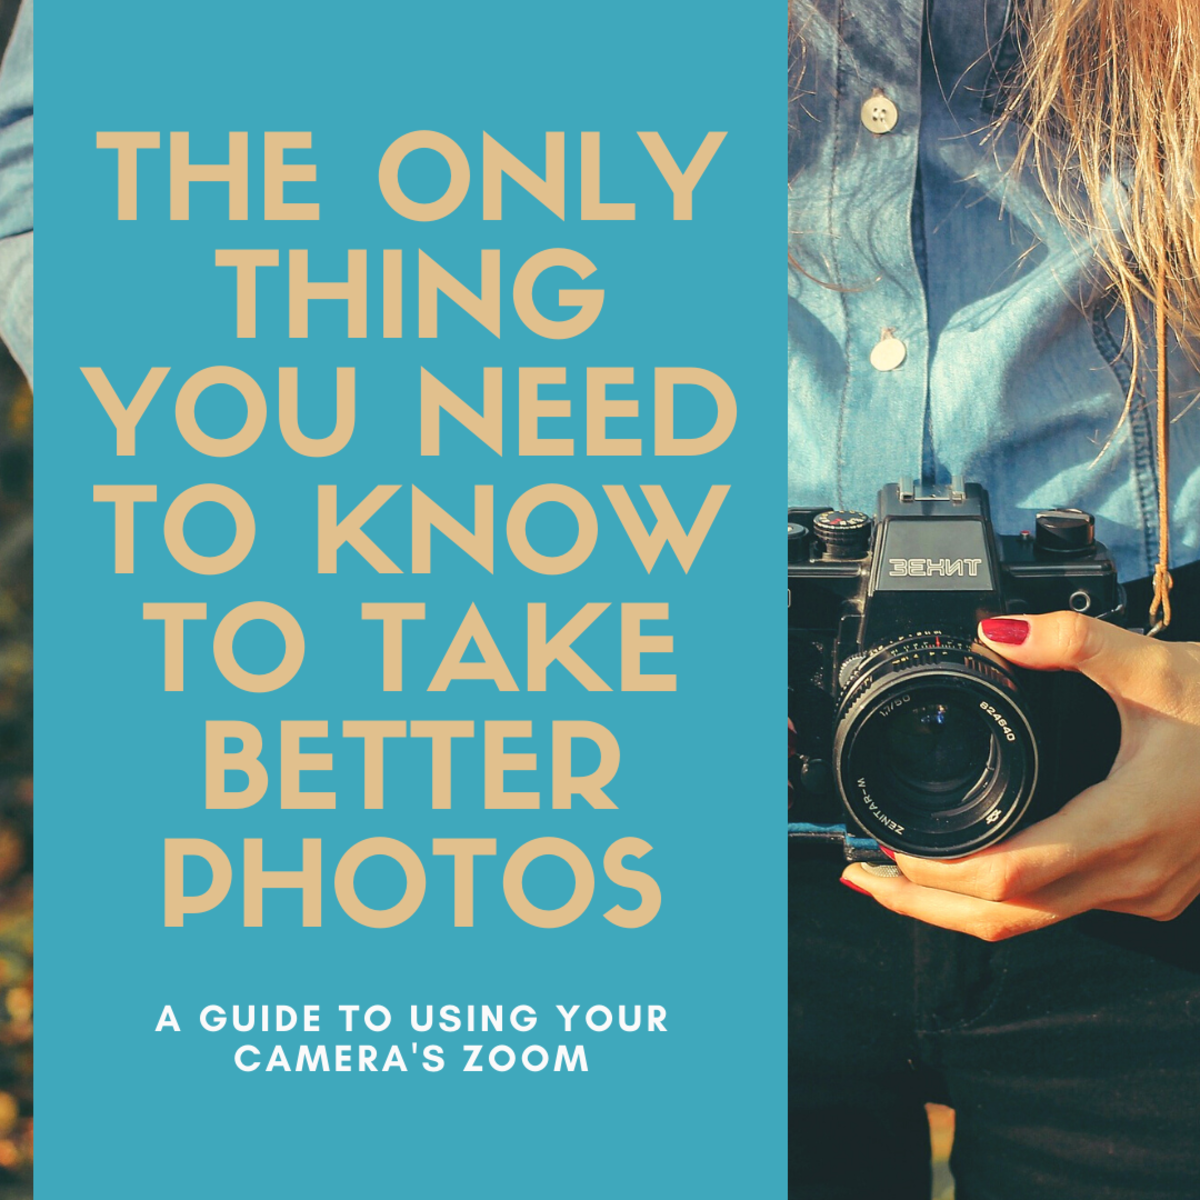 Become a better photographer with these easy tips.